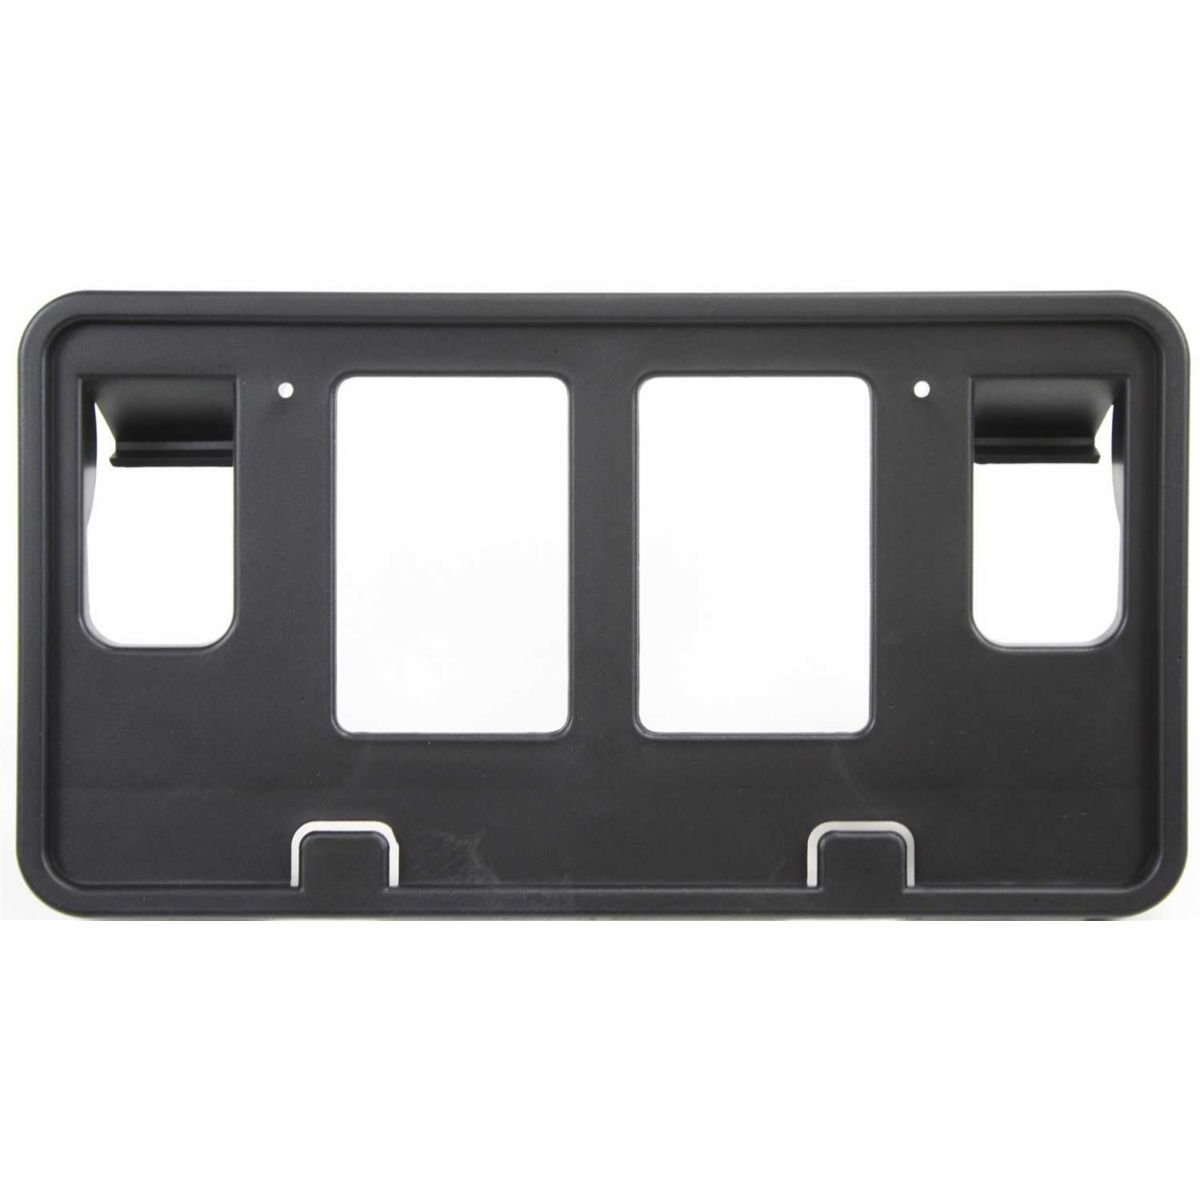 2004-2005 Ford F150 Front License Plate Tag Bracket Holder FO1068121 4L3Z17A385AAA OE Replacement